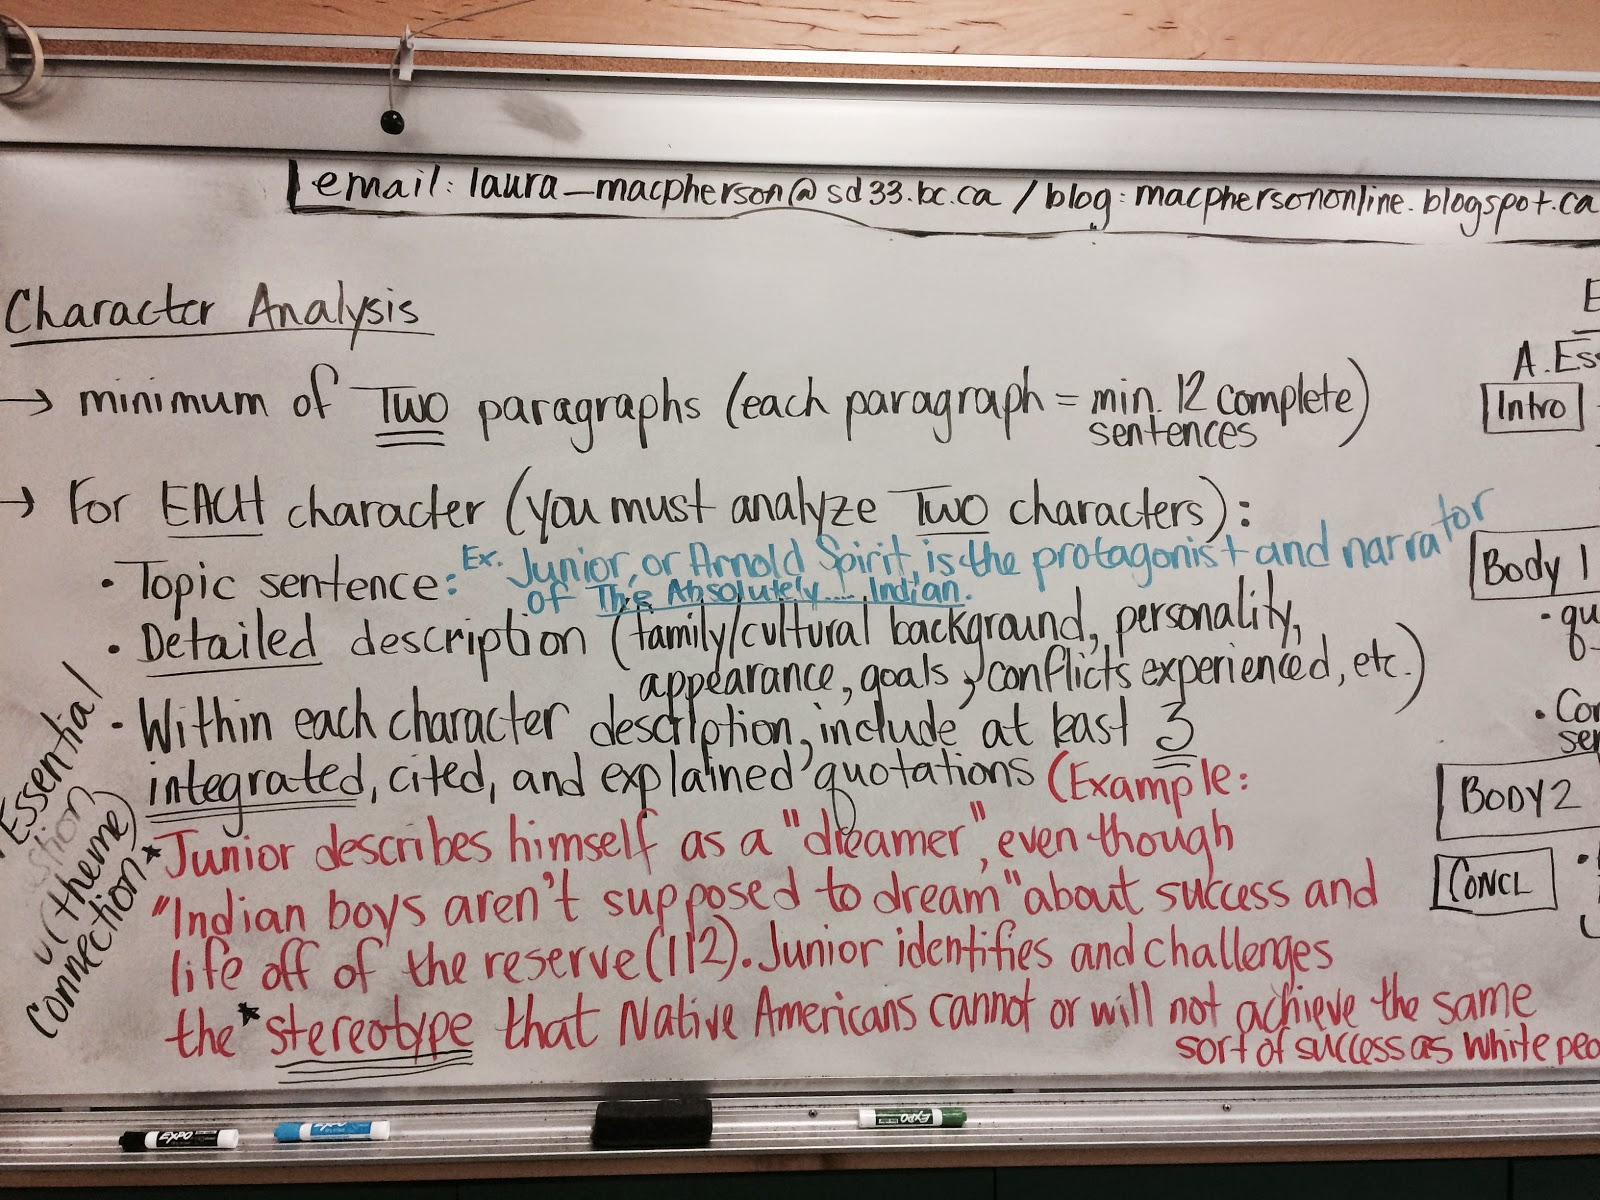 009 Img 4576 Jpg The Crucible Essay Topics Shocking Topic Sentences Analytical Writing Prompts Full